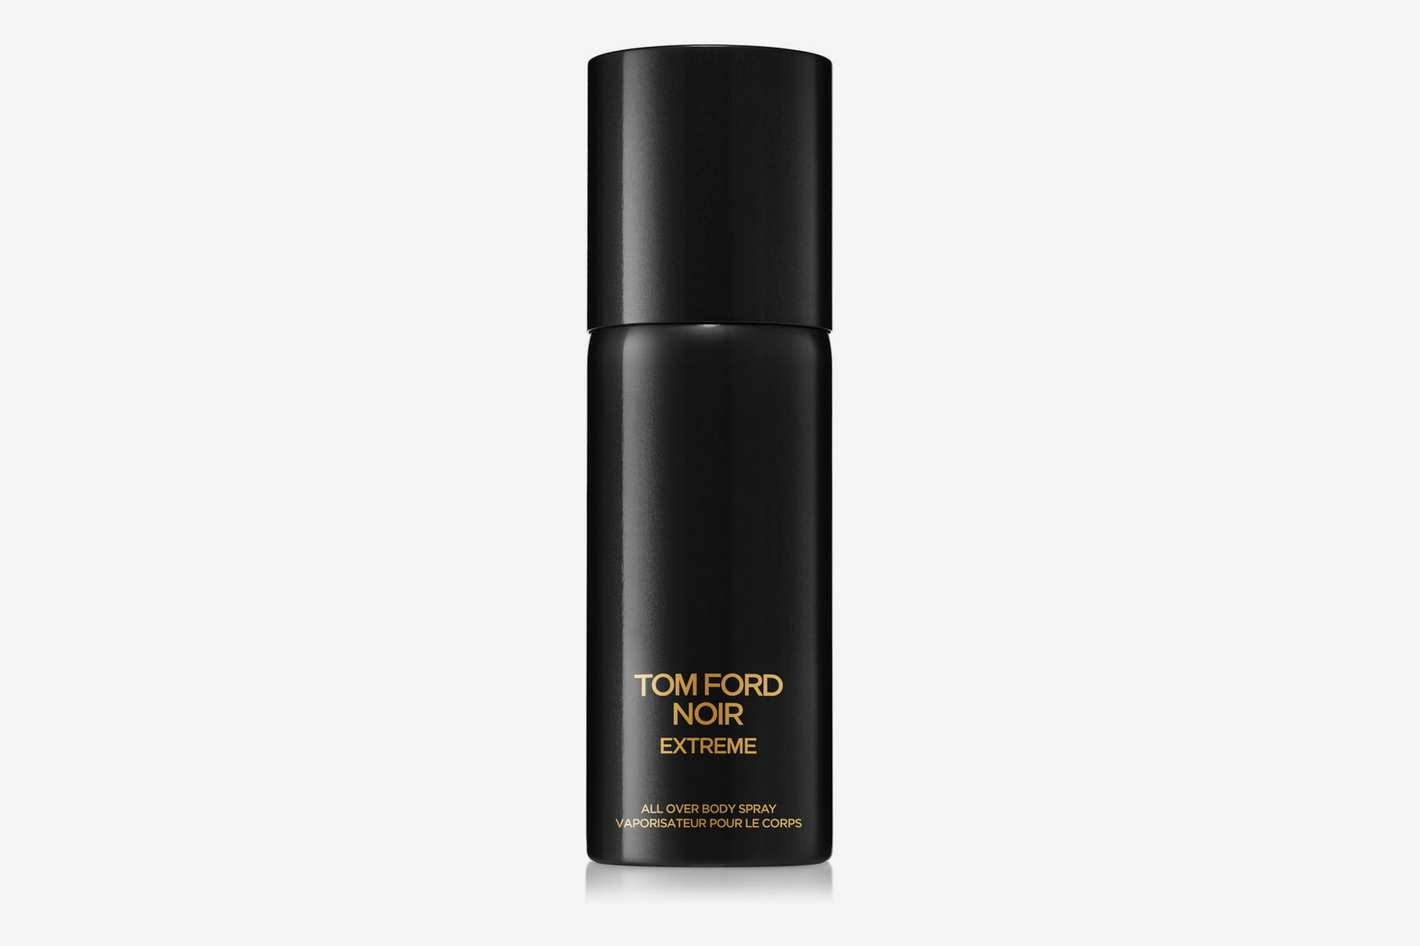 Tom Ford Noir Extreme Body Spray